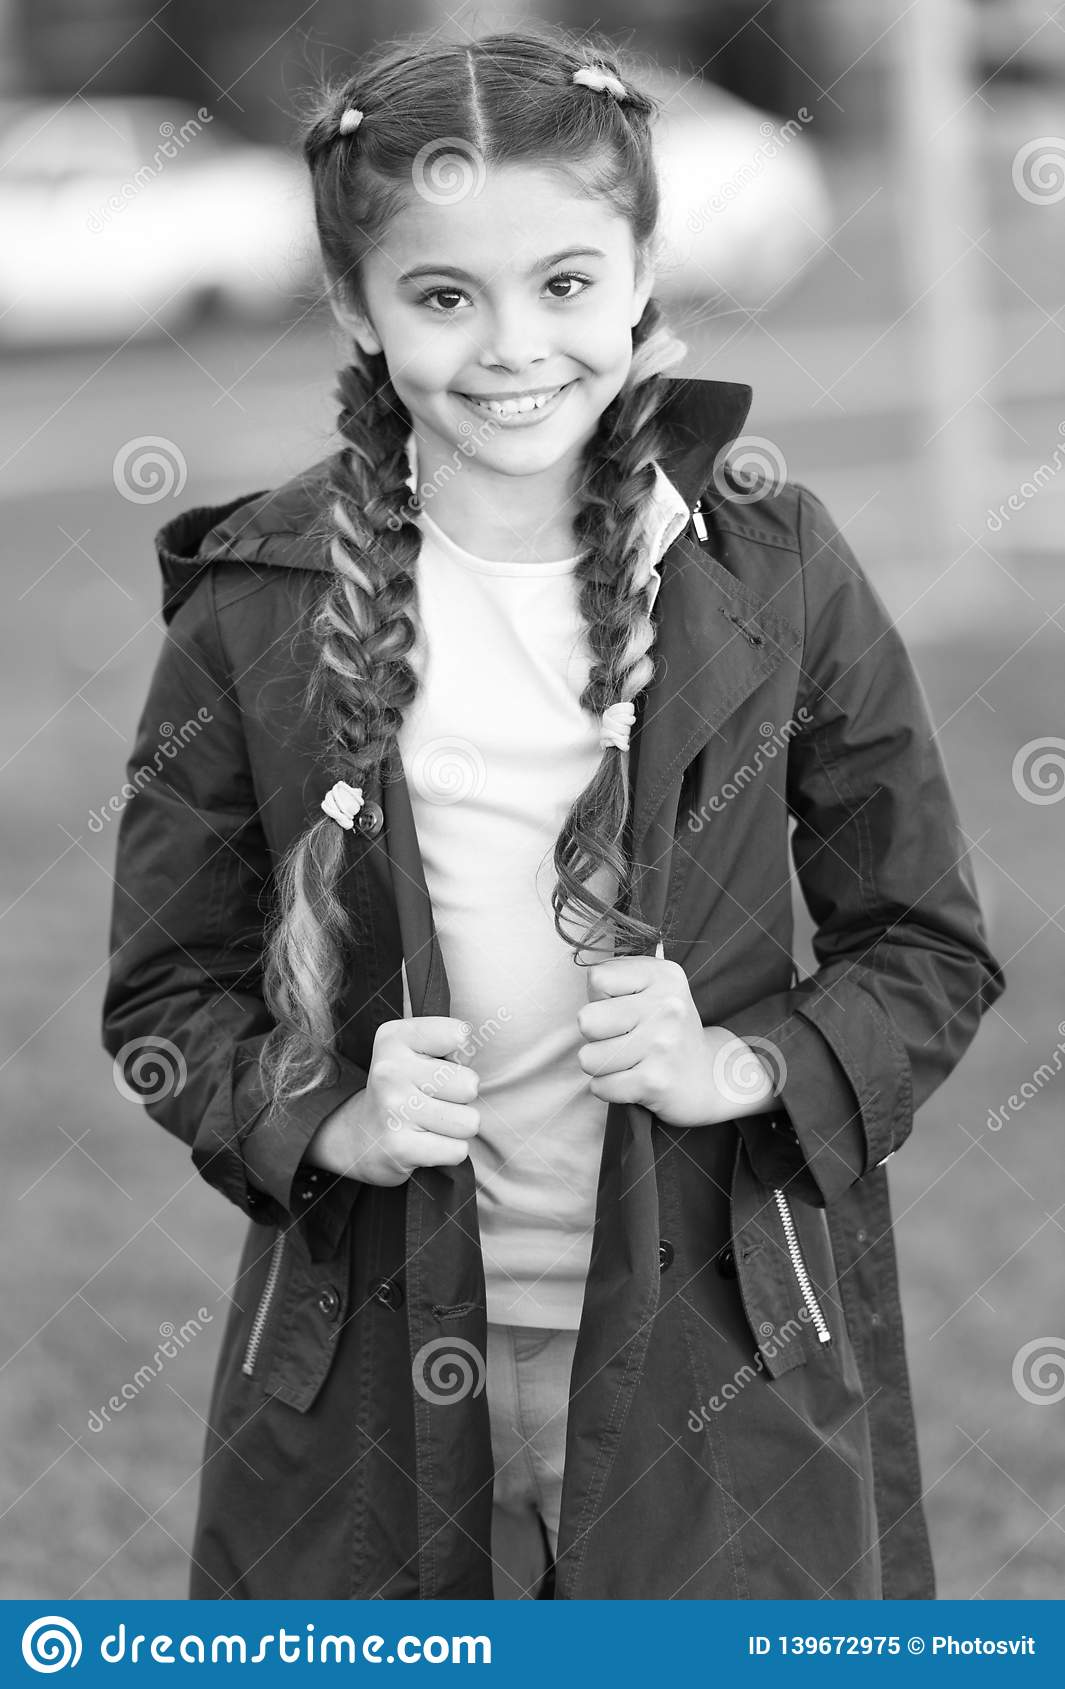 Girl With Braided Hair Style With Pink Kanekalon Add Bright Detail Little Girl With Cute Braids Wear Dark Coat Nature Stock Image Image Of Adorable Girl 139672975